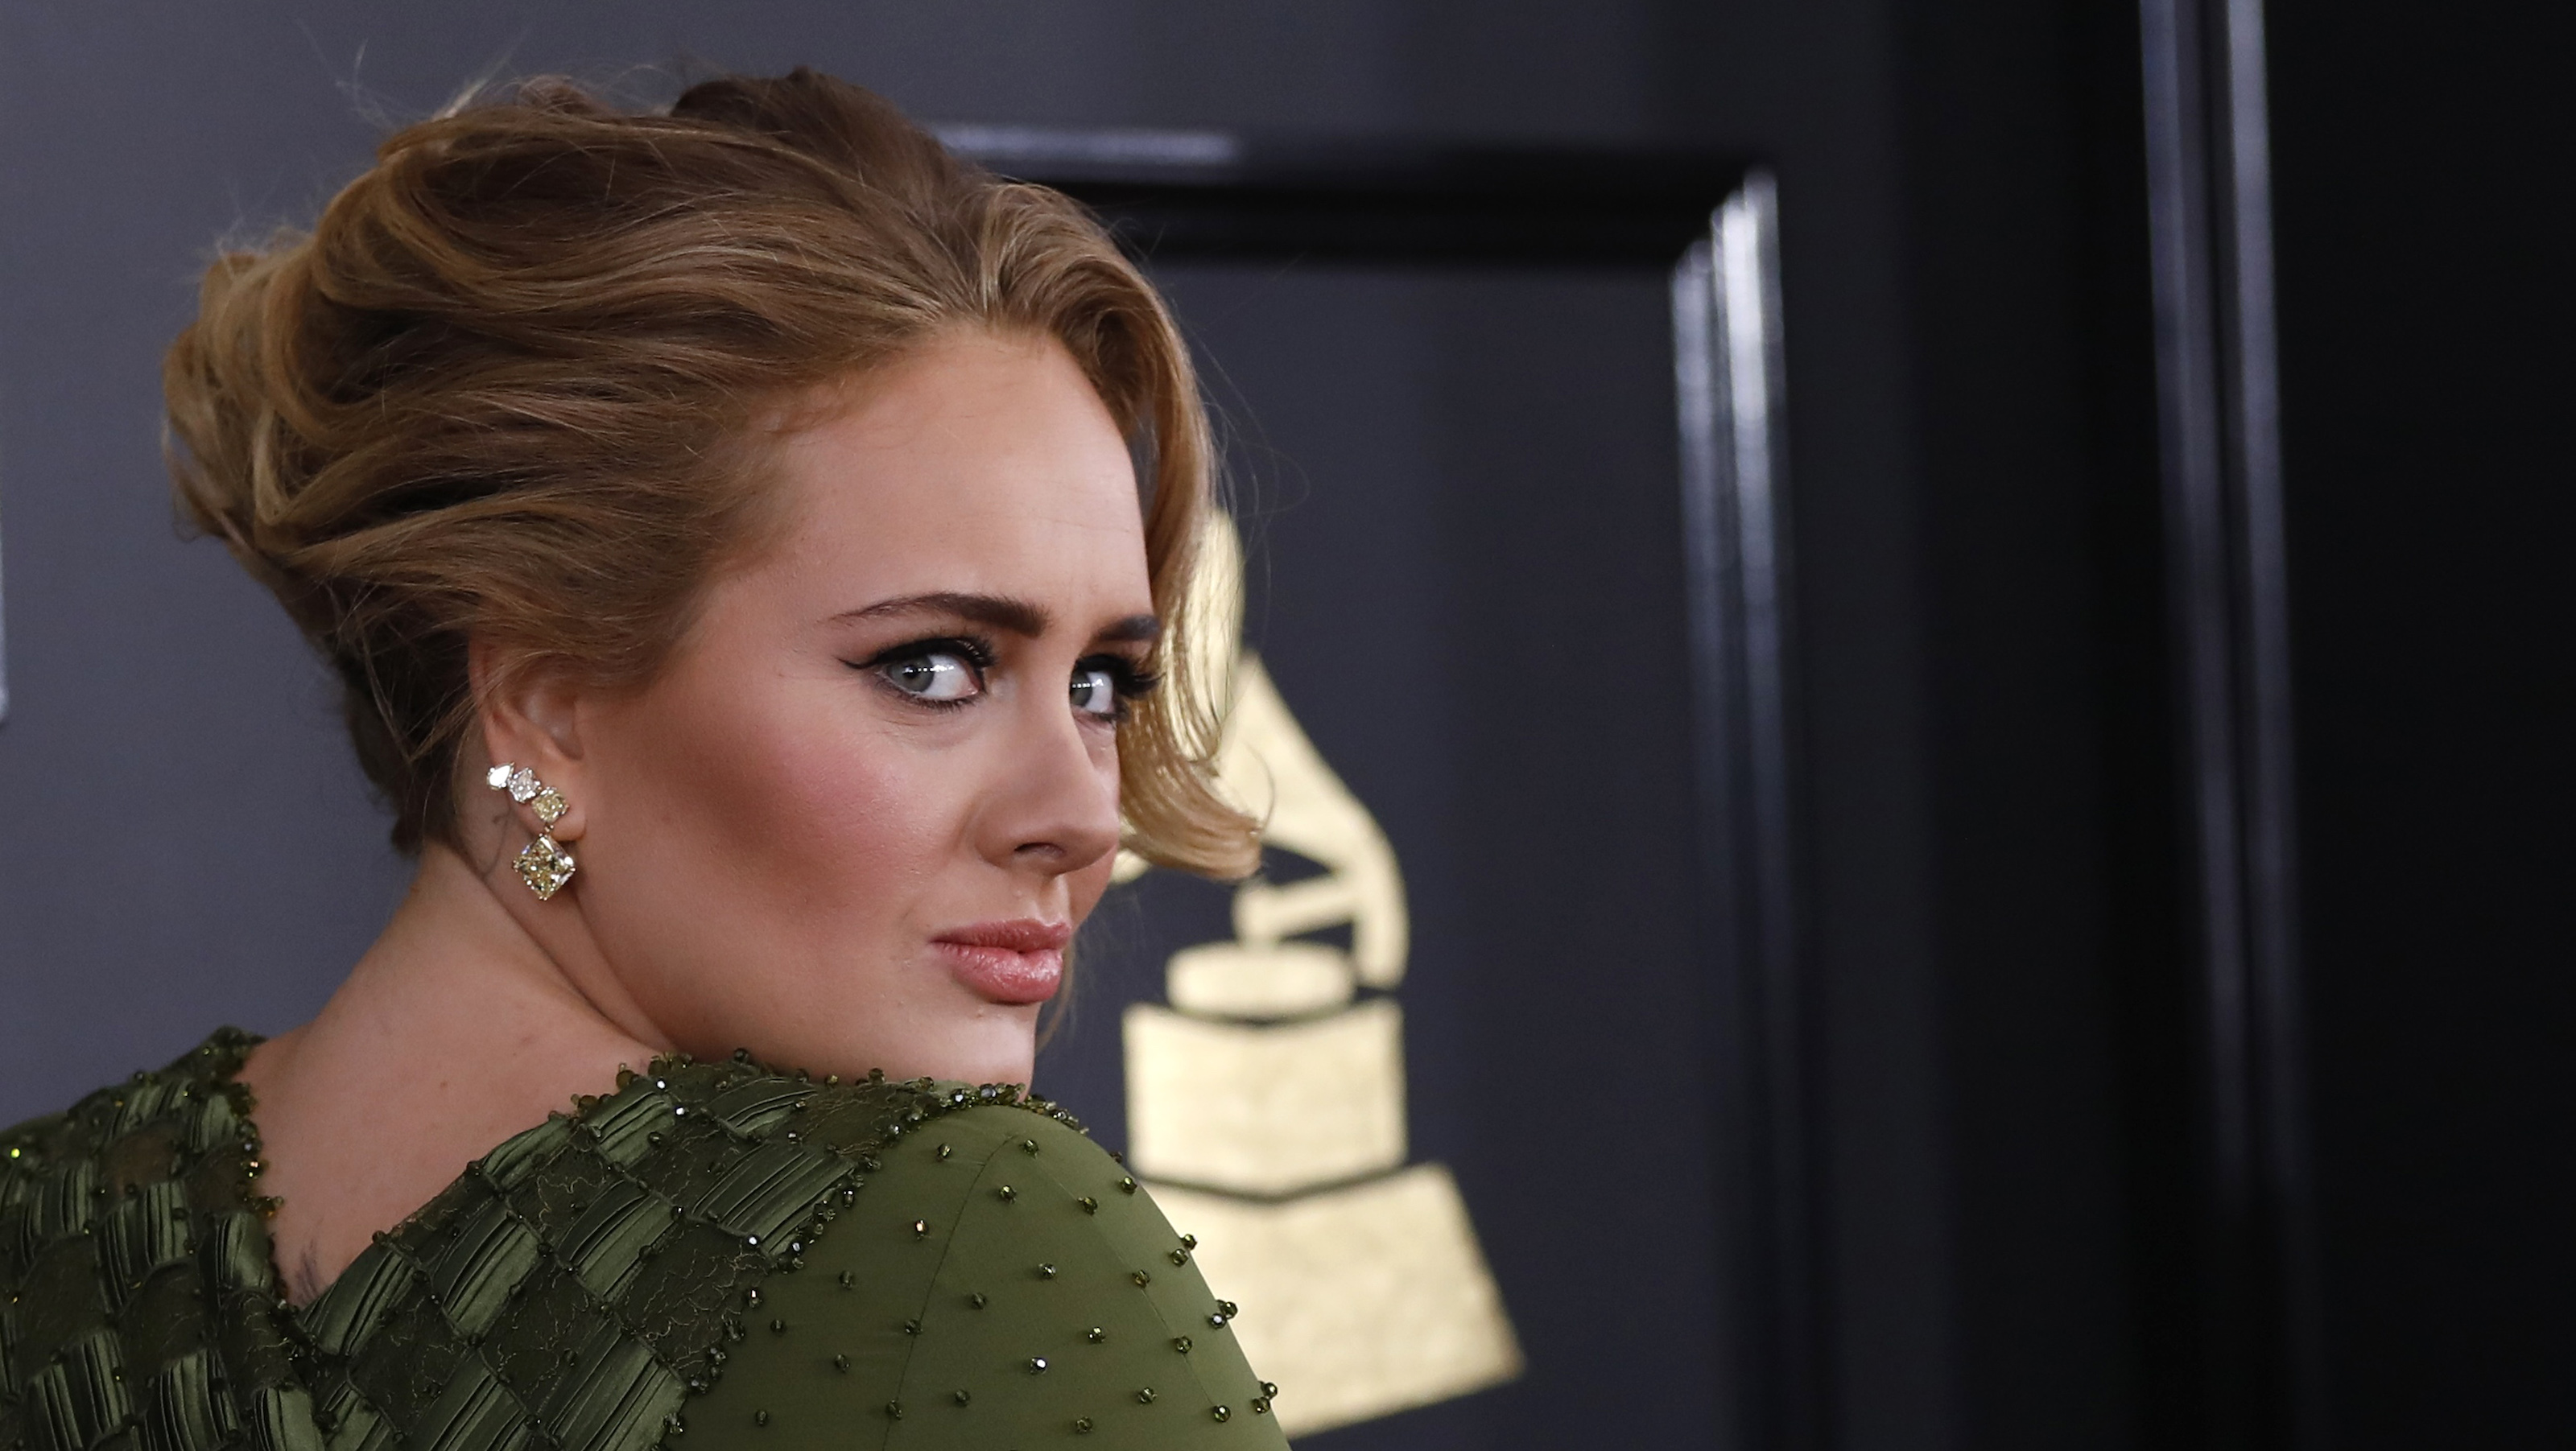 Singer Adele arrives at the 59th Annual Grammy Awards in Los Angeles, California, U.S. , February 12, 2017. REUTERS/Mario Anzuoni - RTSYC60